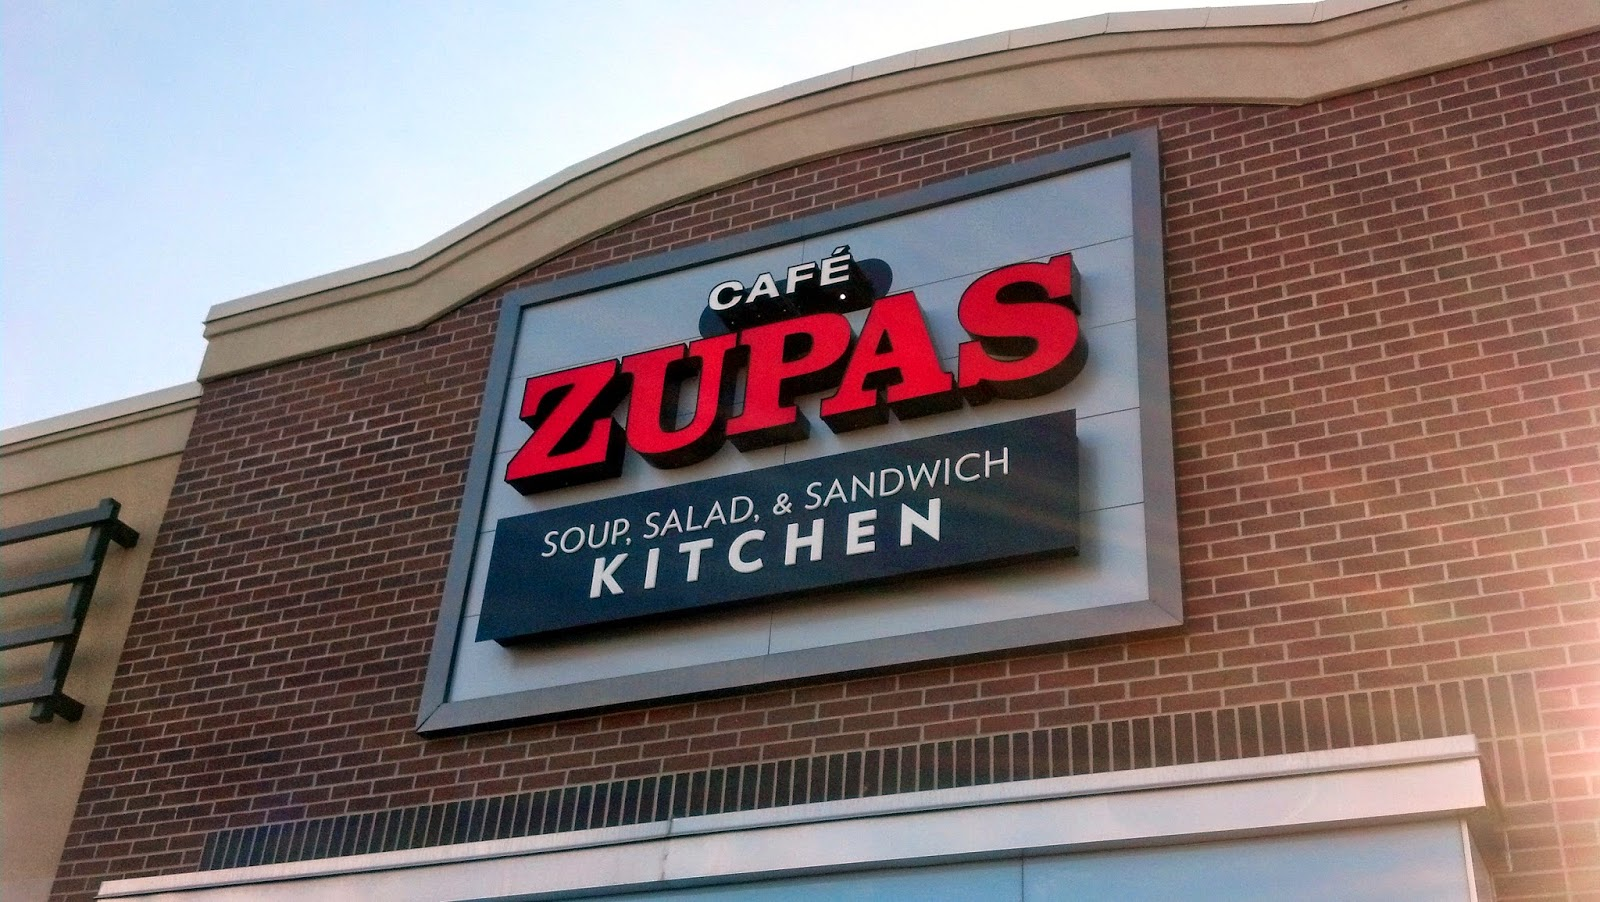 Taco Tuesday Group Reviews Cafe Zupas Soup Salad Sandwich